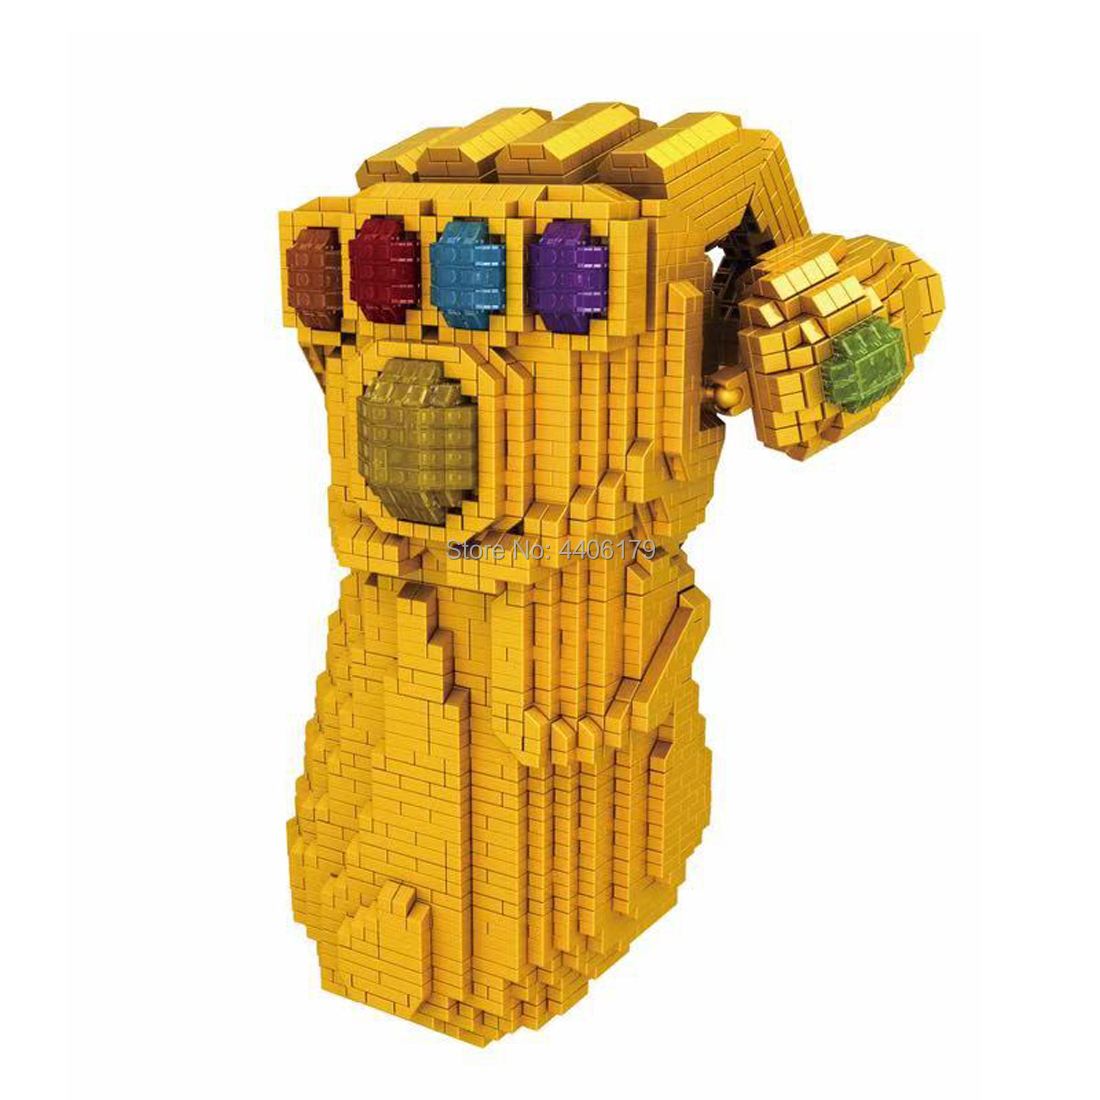 hot LegoINGlys Marvel Super hero Avengers Thanos Infinity Gauntlet gem micro diamond building blocks model MOC bricks toys gift in Blocks from Toys Hobbies